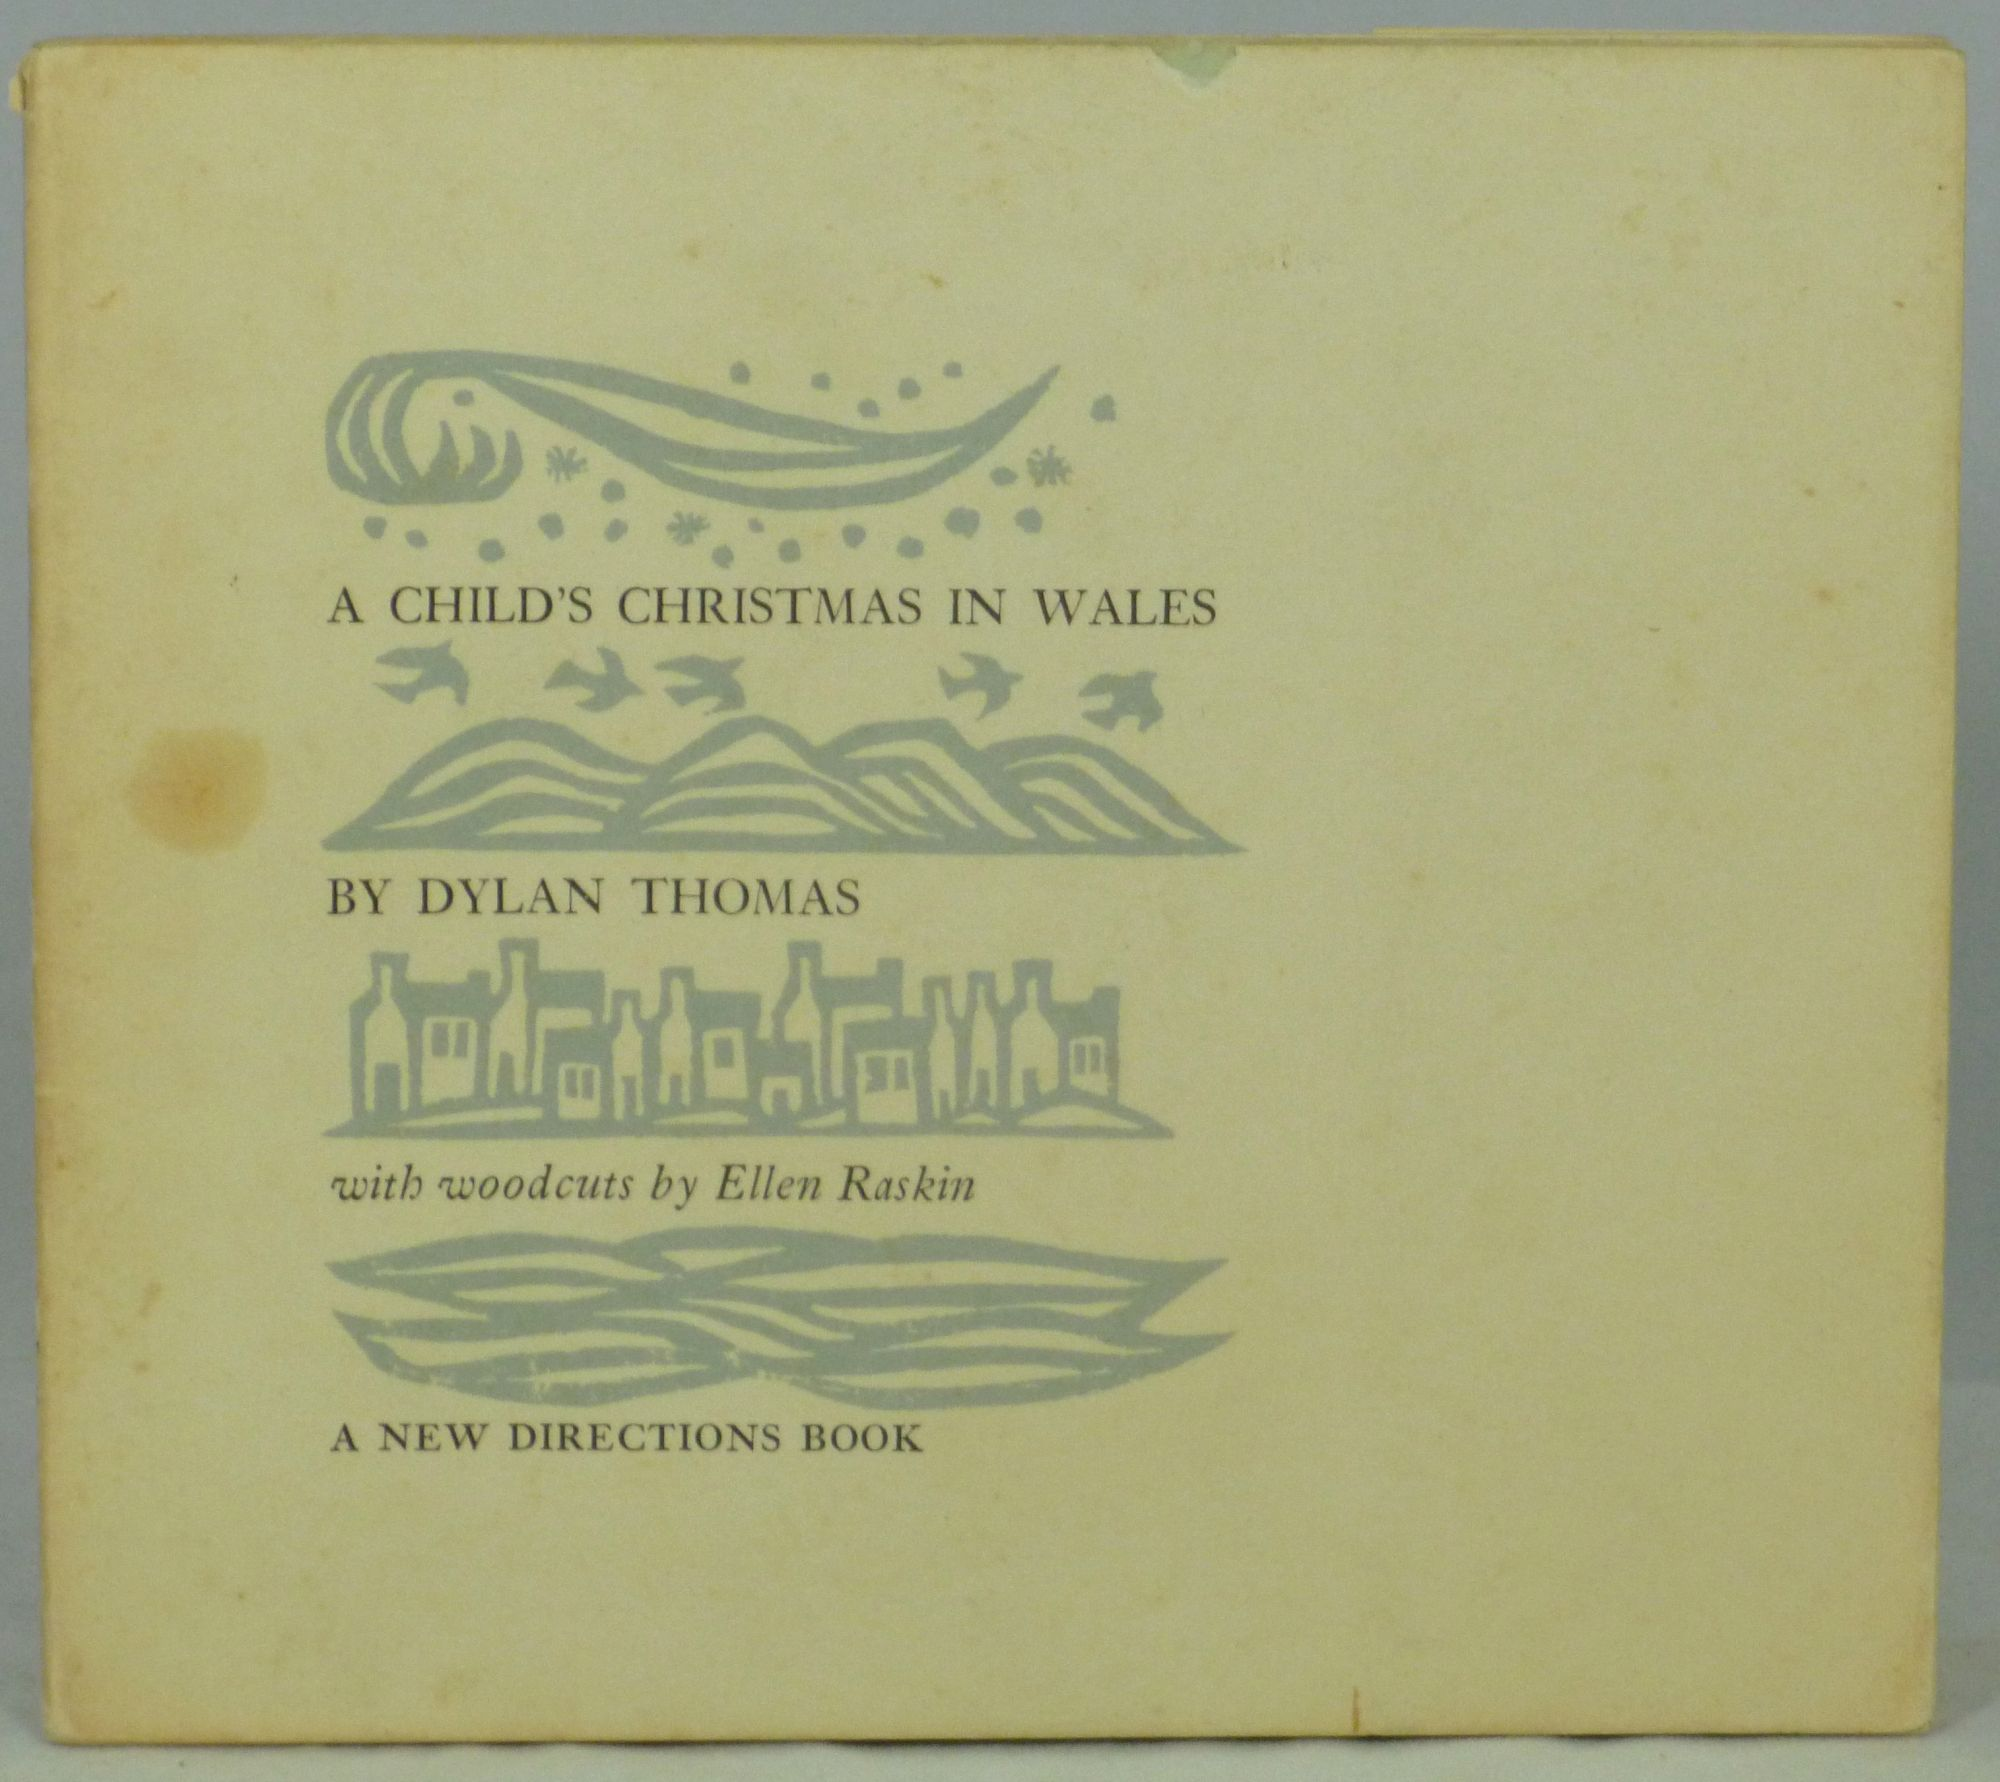 A Childs Christmas In Wales.A Child S Christmas In Wales By Dylan Thomas On Underground Books